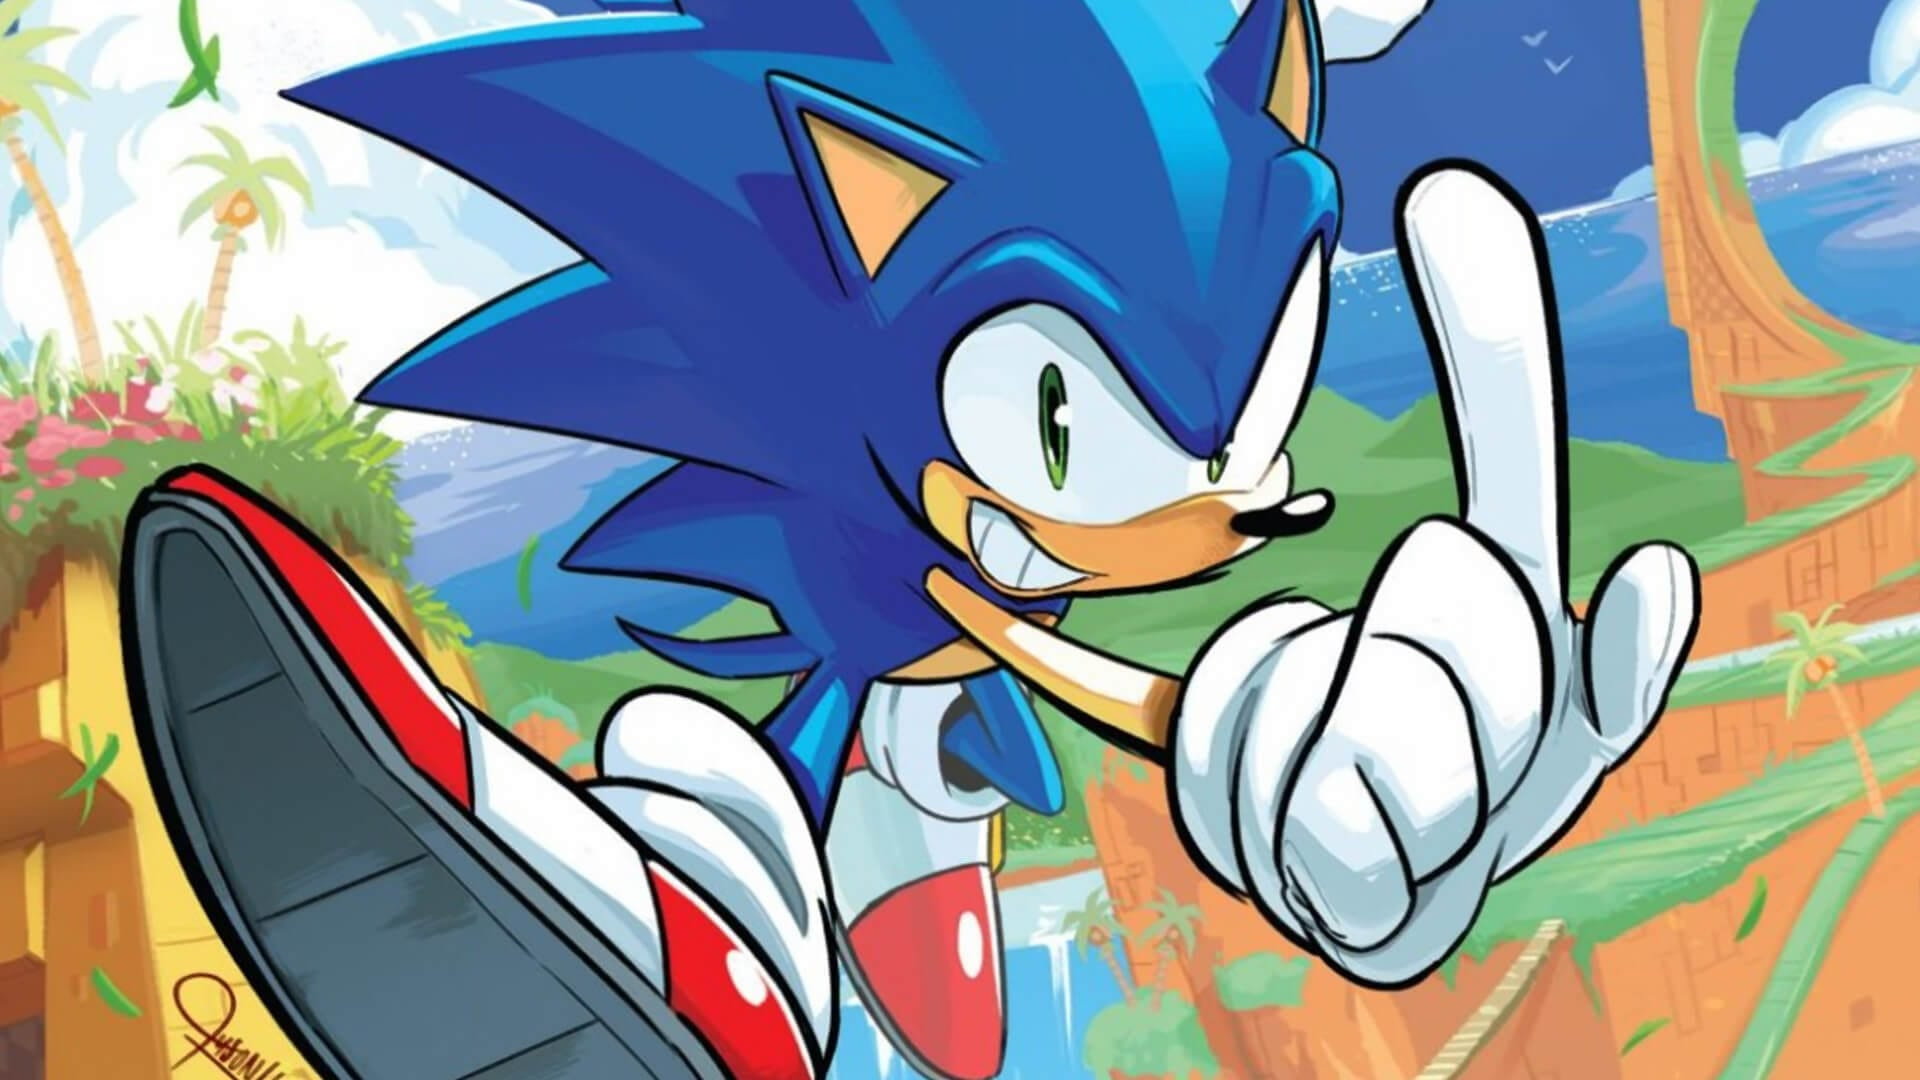 Review Sonic The Hedgehog 1 4 By Idw Geeks Gamers